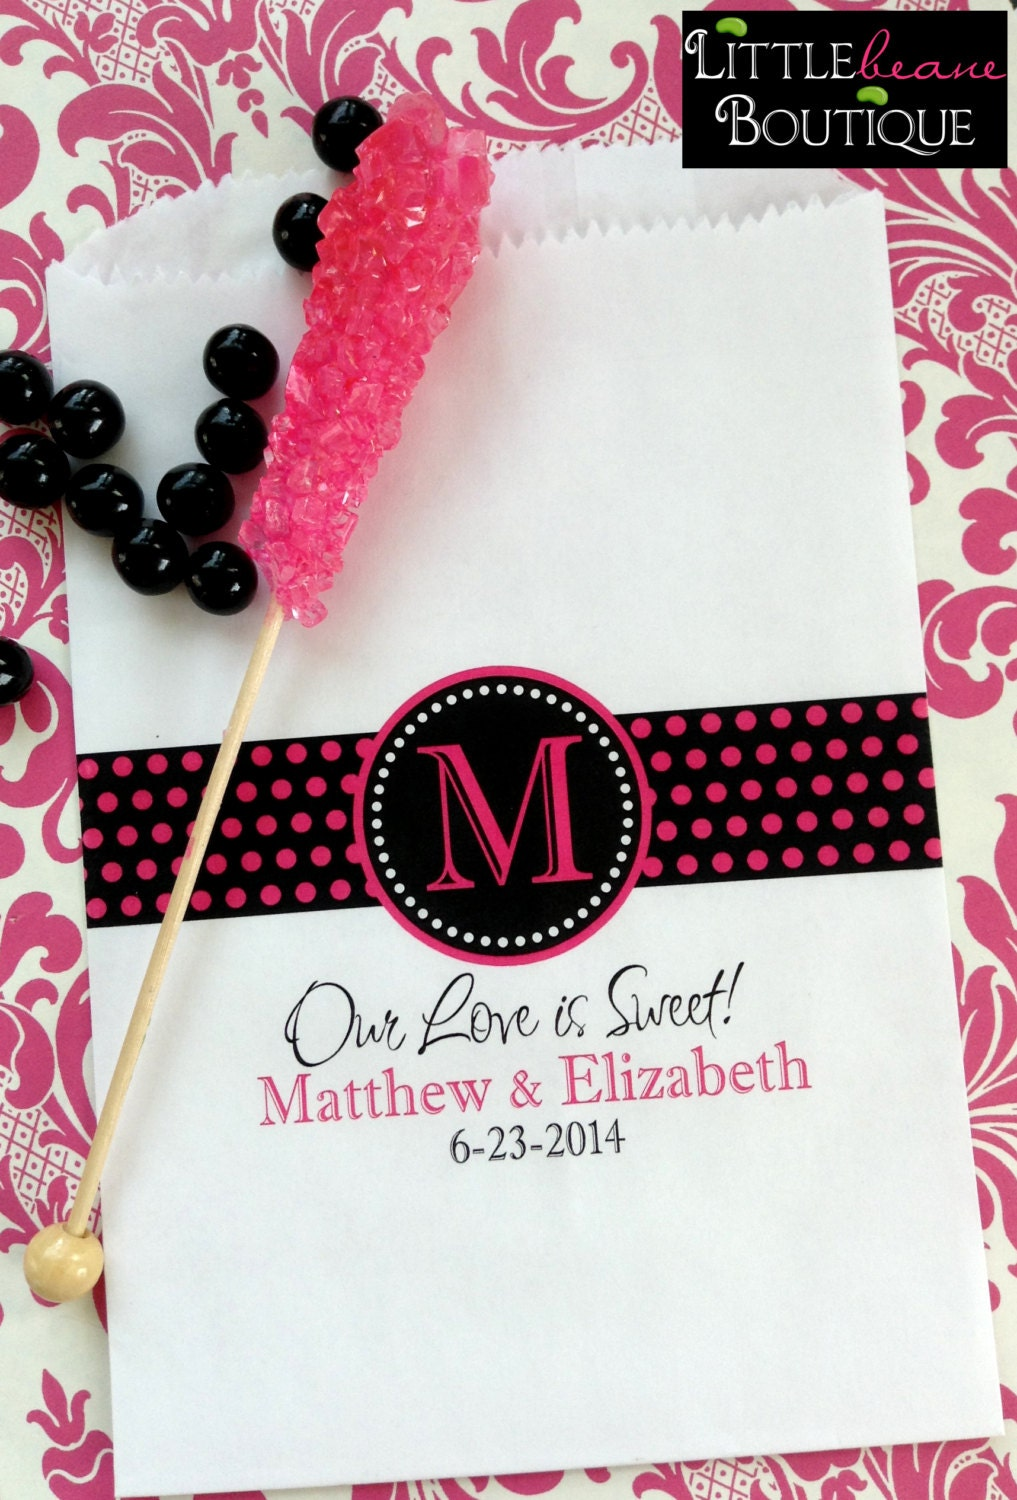 Personalized Candy BagsMonogram Ribbon Design Wedding Favor